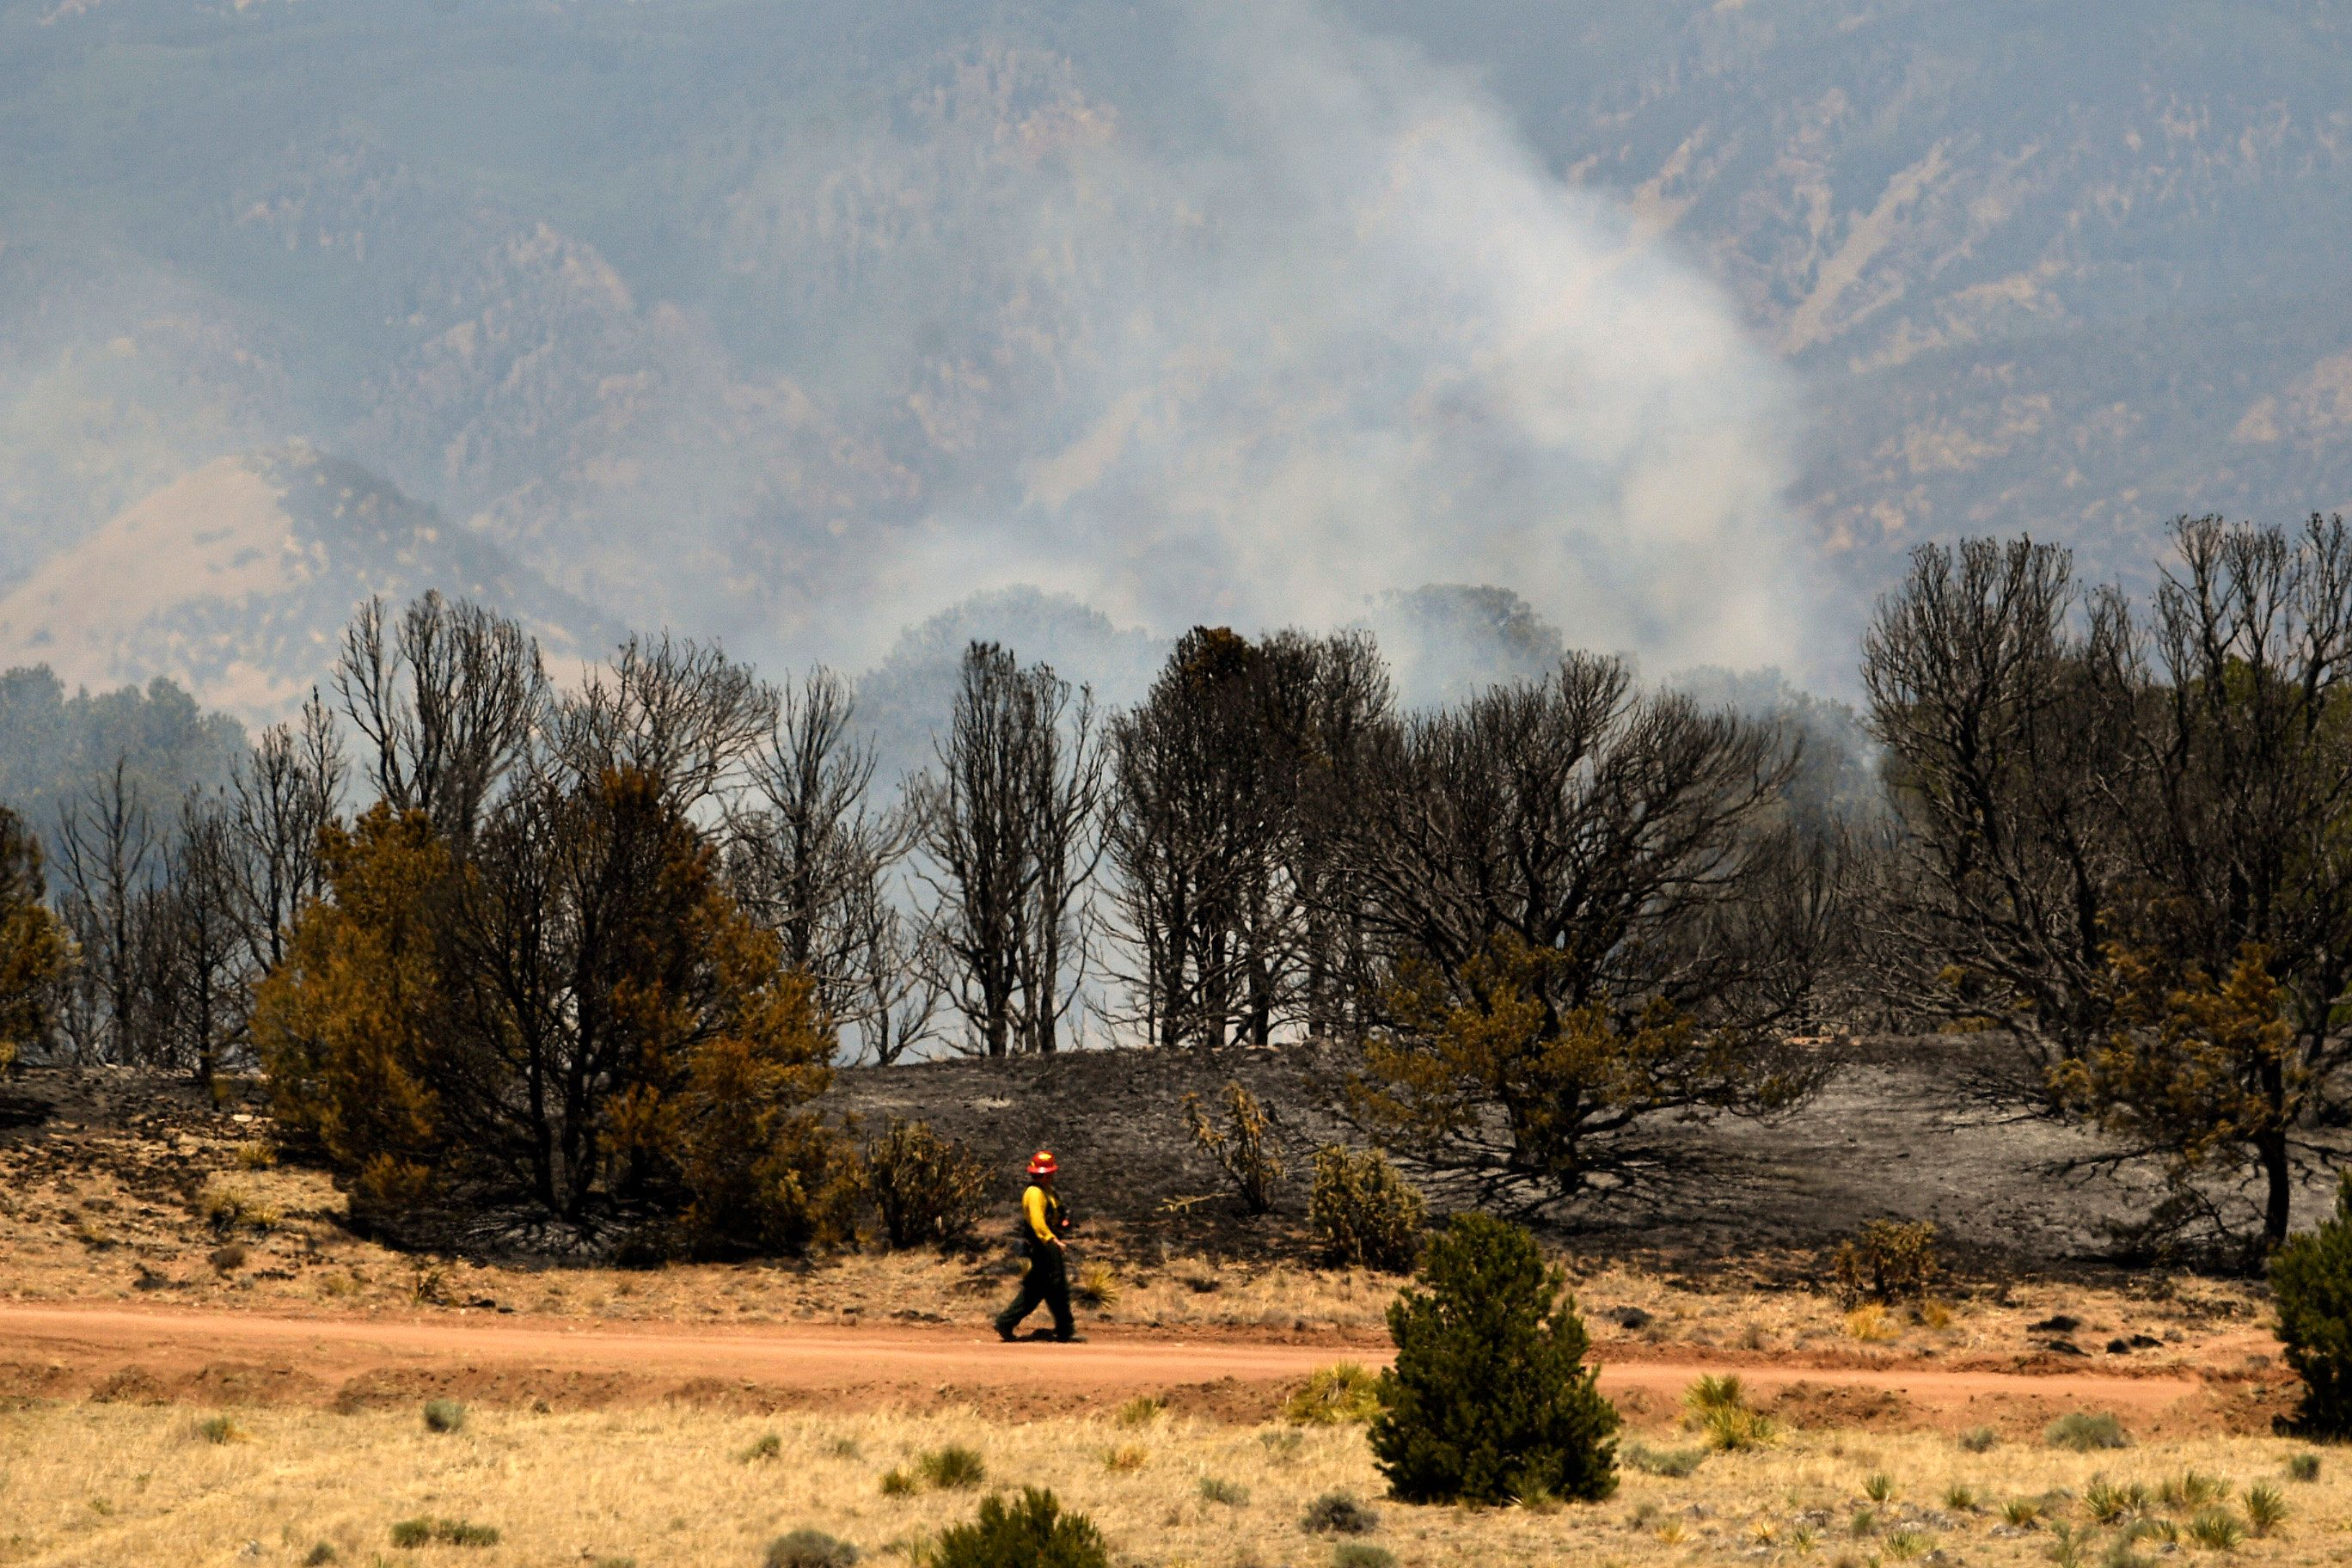 LA VETA, CO - JULY 8:  A firefighter checks on a spot fire near the northern end of the Spring Creek Fire on July 8, 2018 in La Veta, Colorado. The Spring Fire has now burned an area slightly larger than the city and county of Denver. The fire has burned 106,985 acres and currently stands at 55% containment.  (Photo by Helen H. Richardson/The Denver Post via Getty Images) (Photo by Helen H. Richardson/The Denver Post via Getty Images)